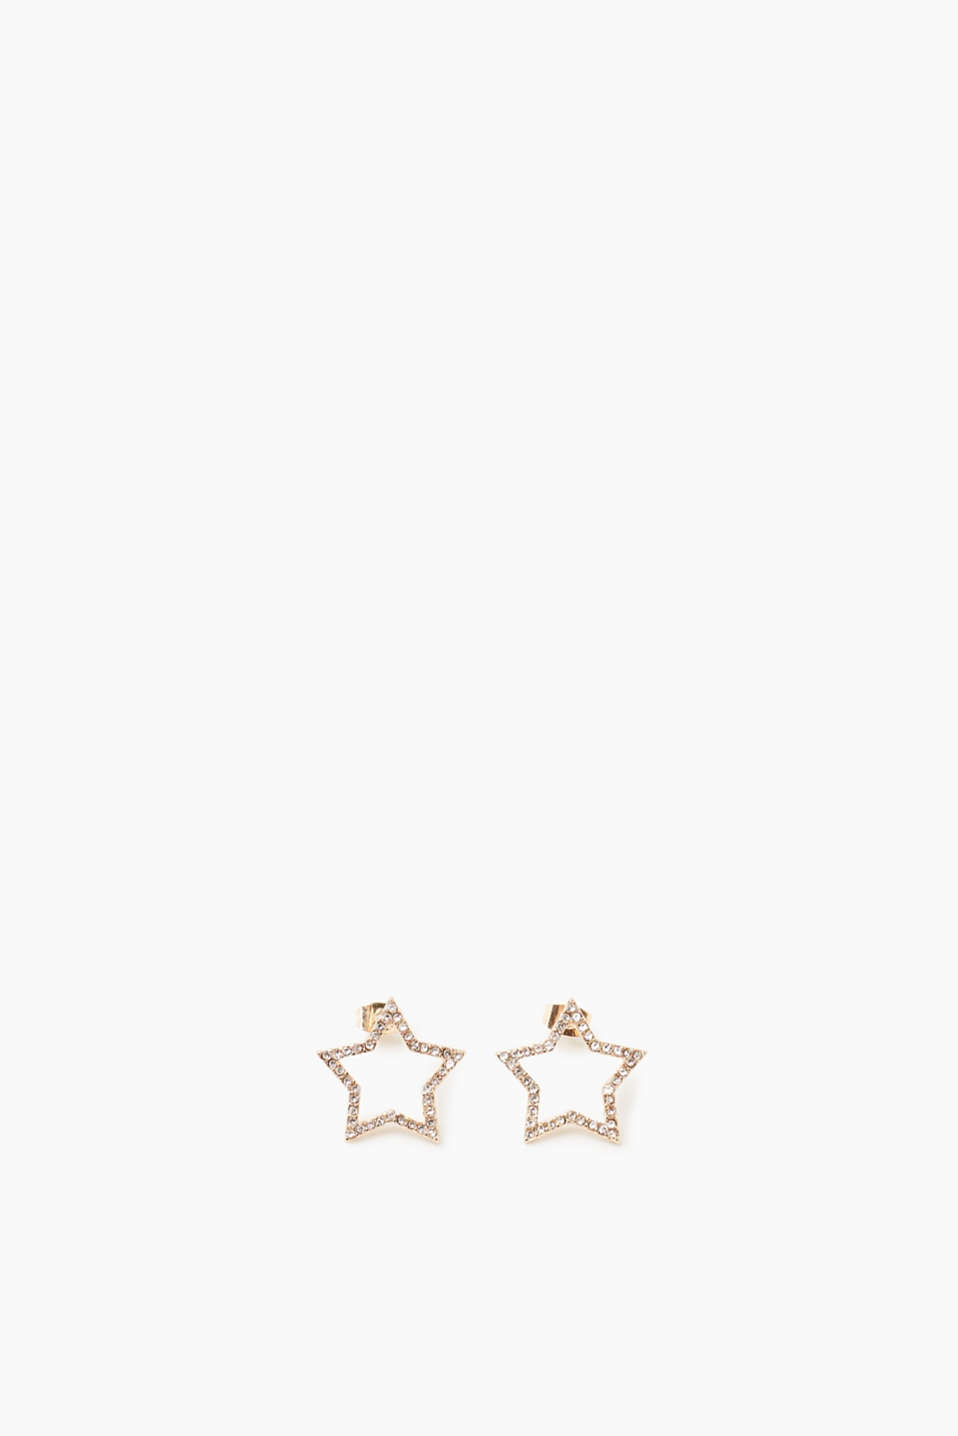 The perfect gift: These glittering rhinestone stars sparkle at the ear lobes!